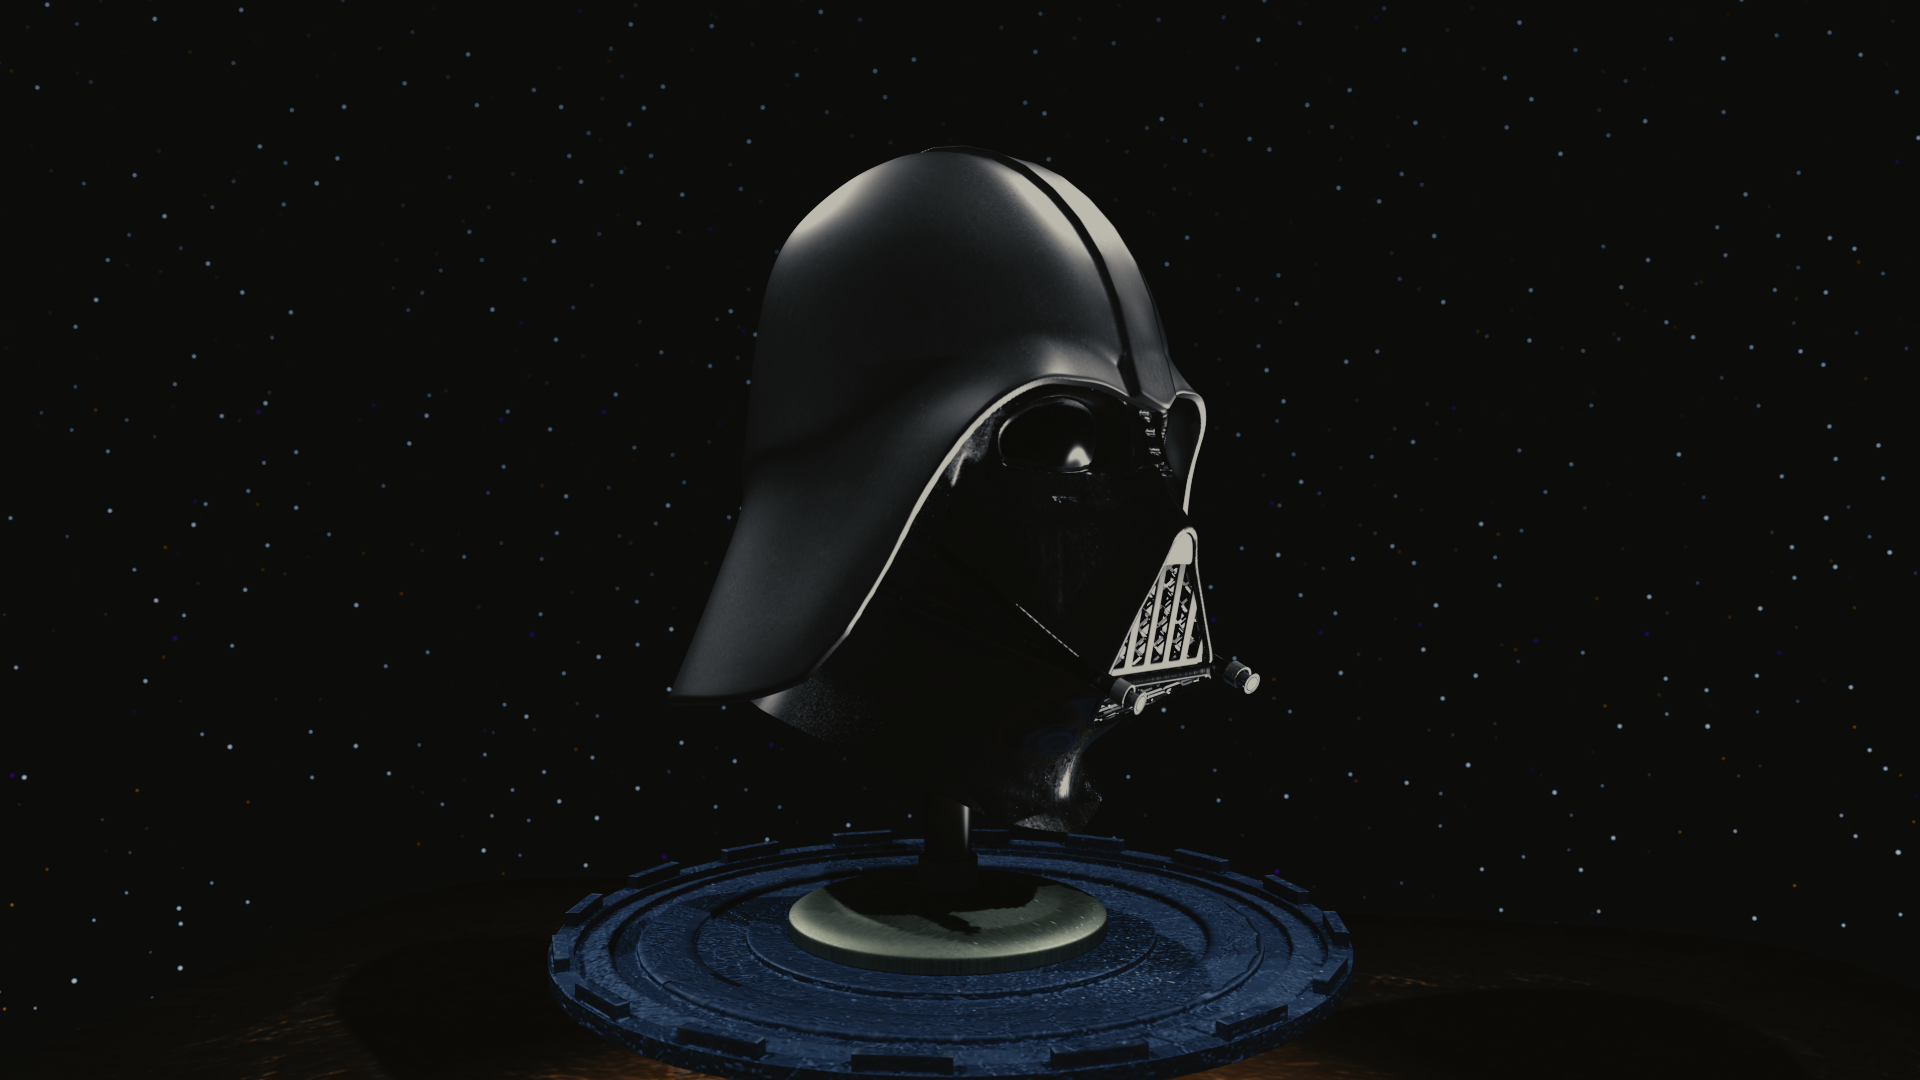 Darth vader, Star wars, το Star Wars, κράνος, χώρο - Wallpapers HD - Professor-falken.com